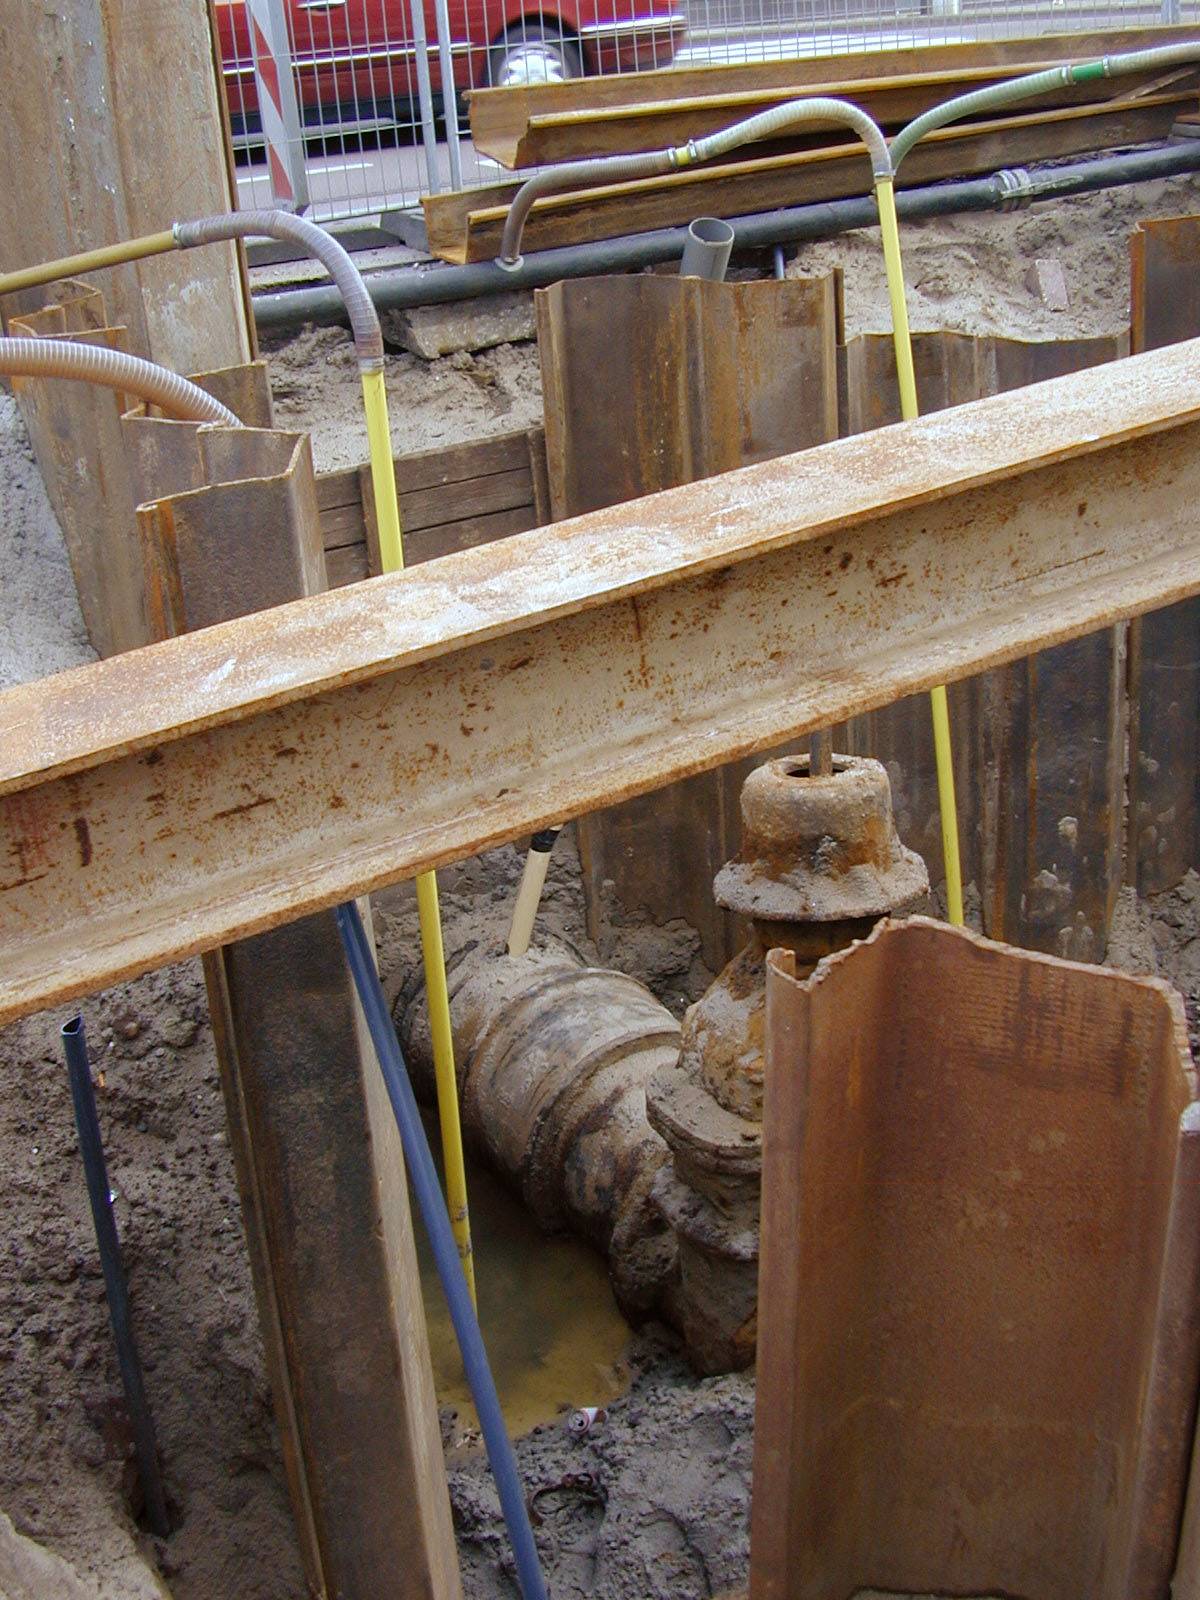 industry building site metal rusty tubes drainage construction